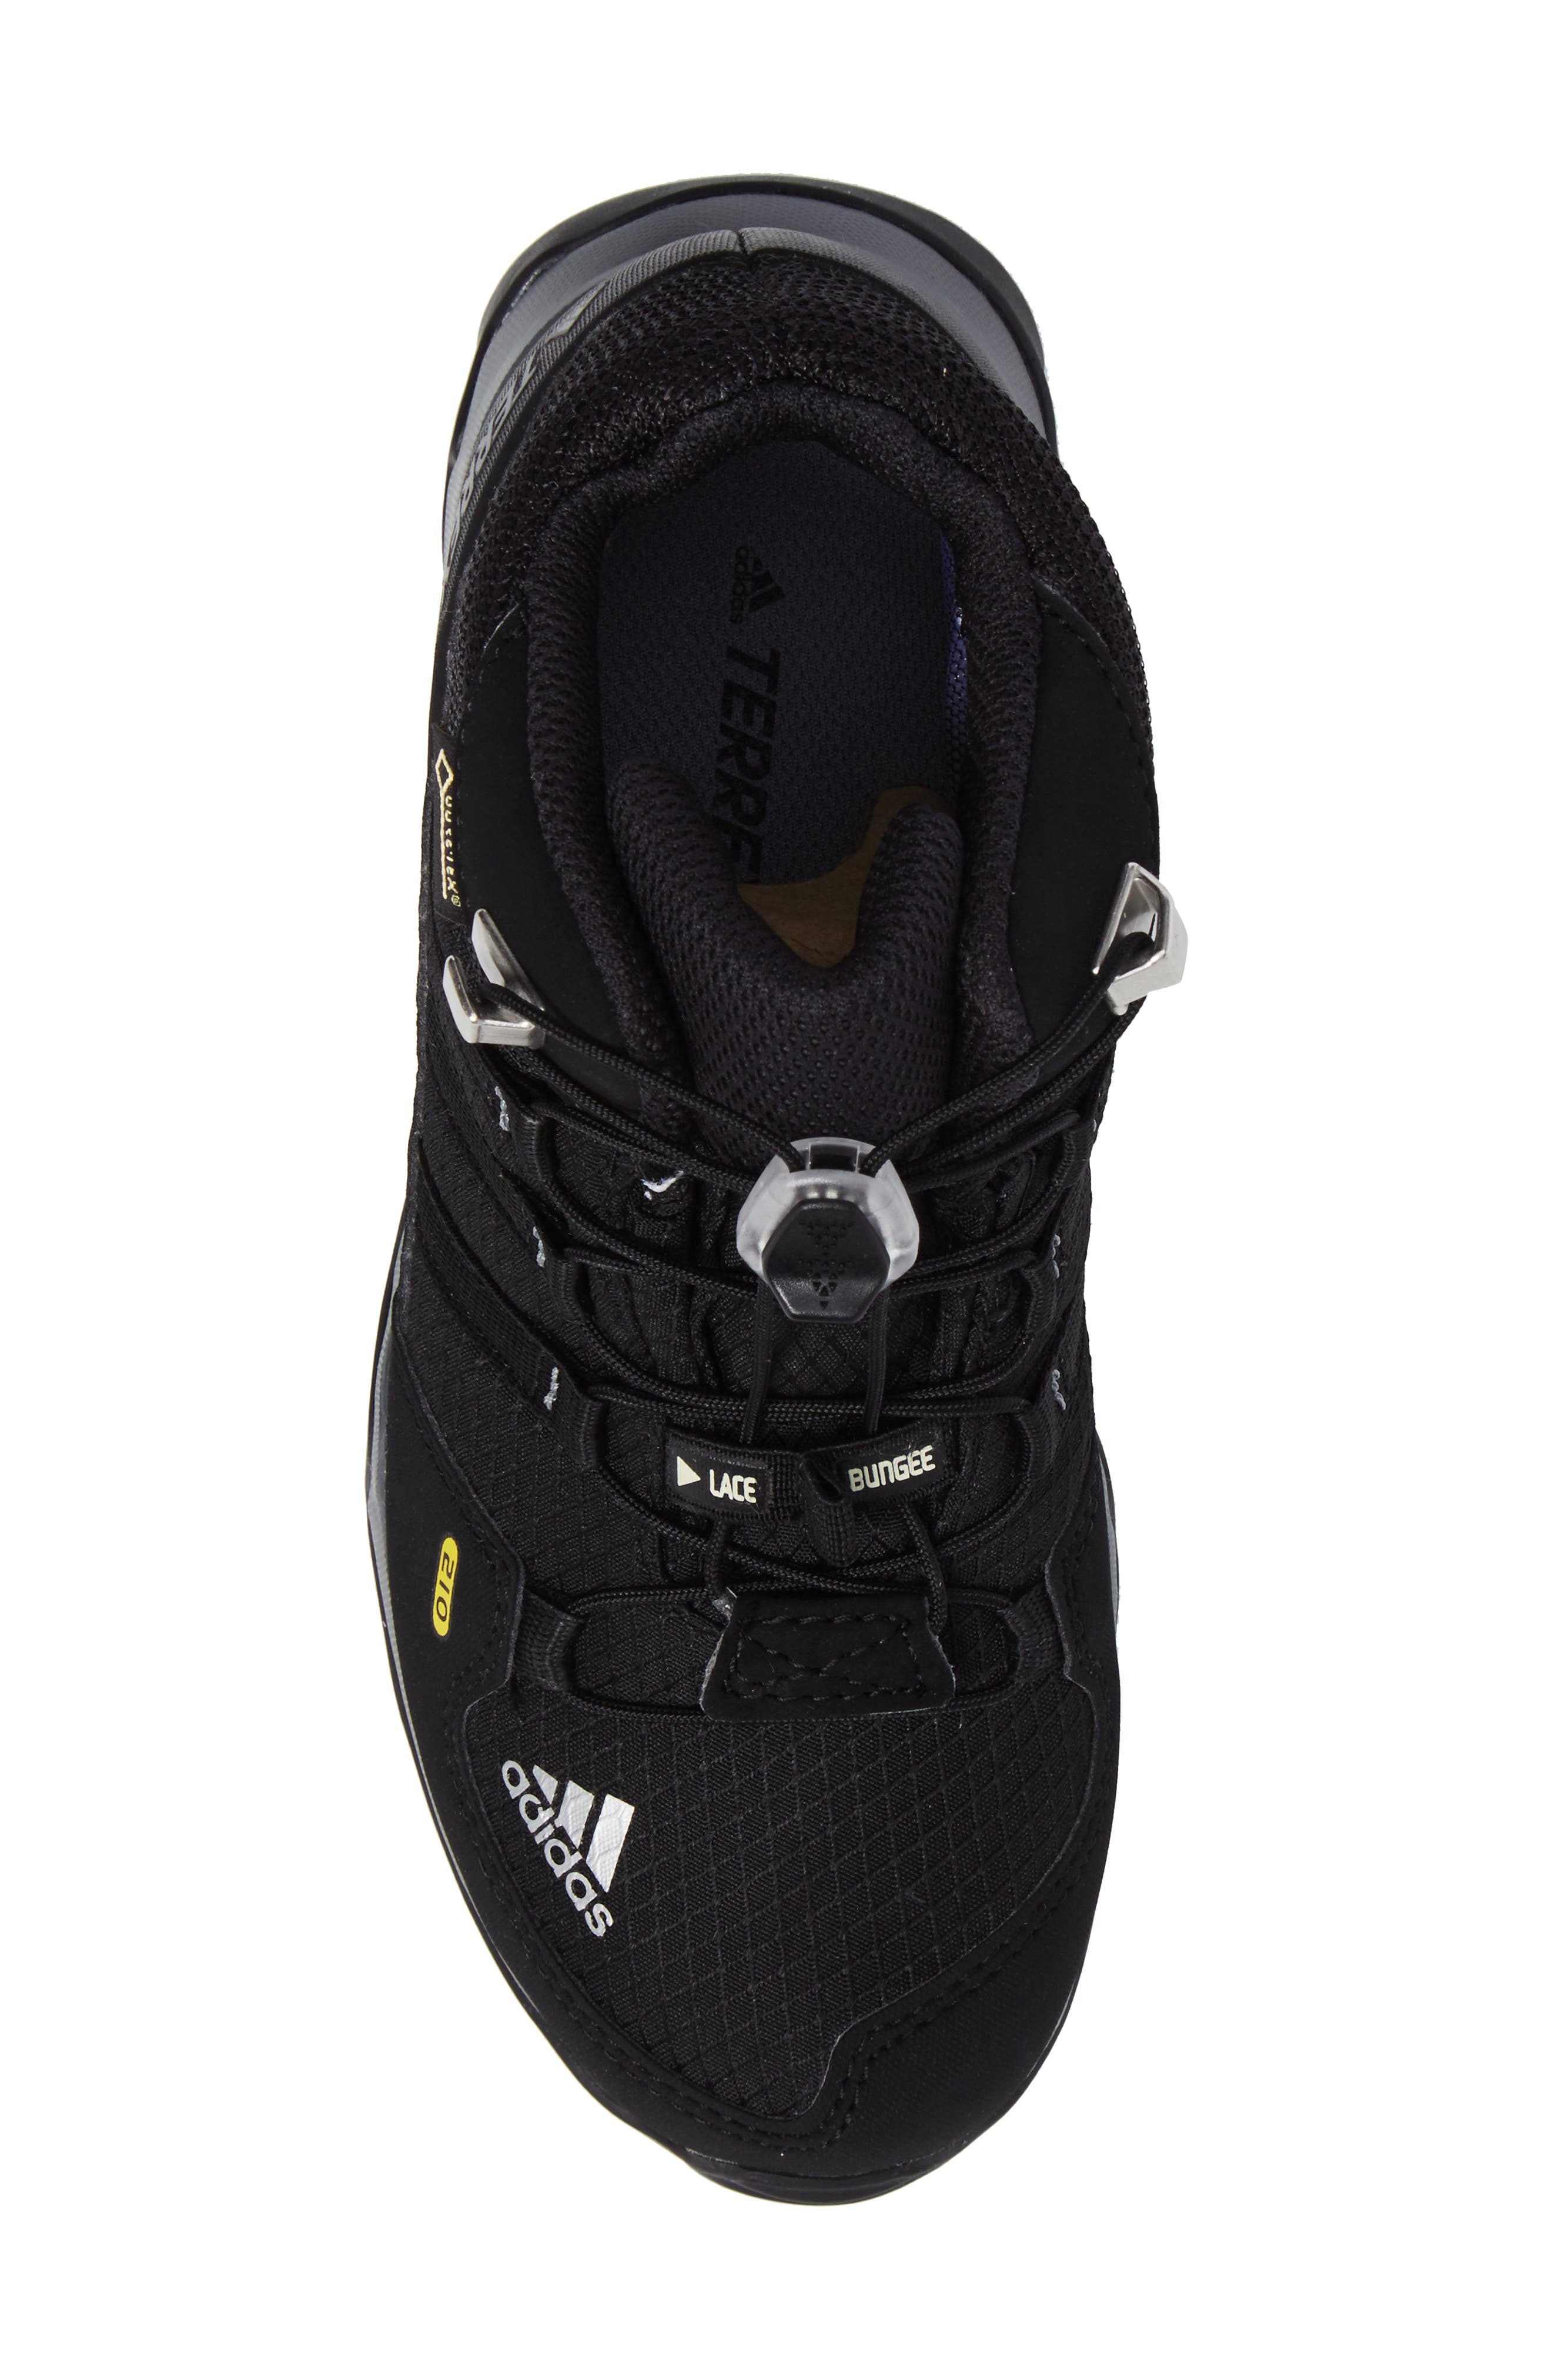 Terrex Mid Gore-Tex<sup>®</sup> Insulated Waterproof Sneaker Boot,                             Alternate thumbnail 5, color,                             001